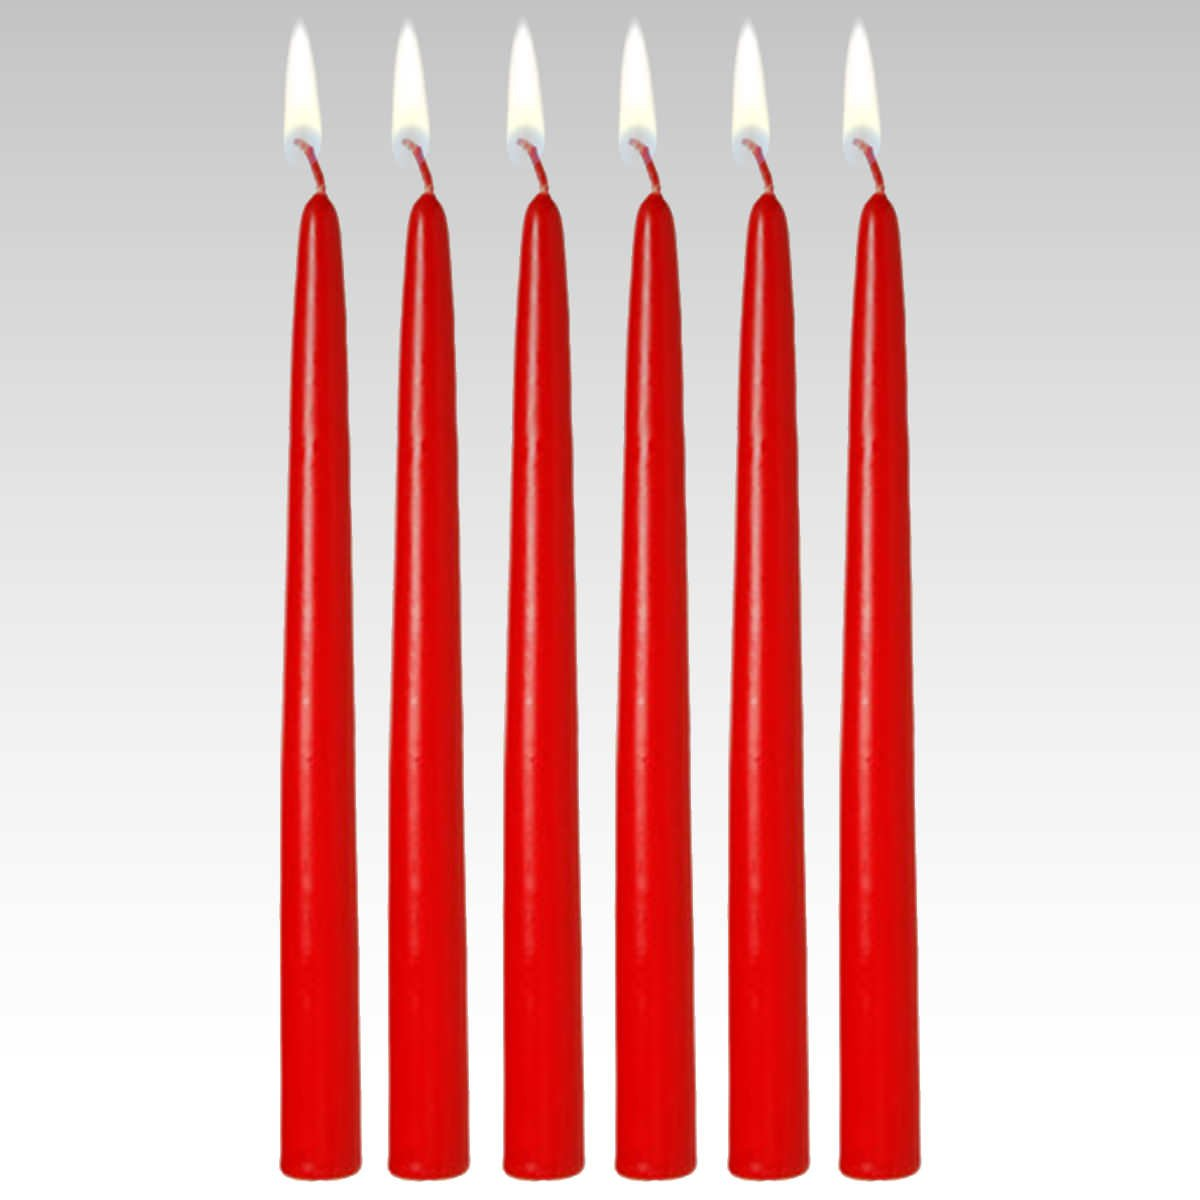 Candles4less - 18 inch Red Taper Candles (Set of 12) Unscented Red Taper Candles with Lead Free Cotton Wicks, Dripless Made in USA ...